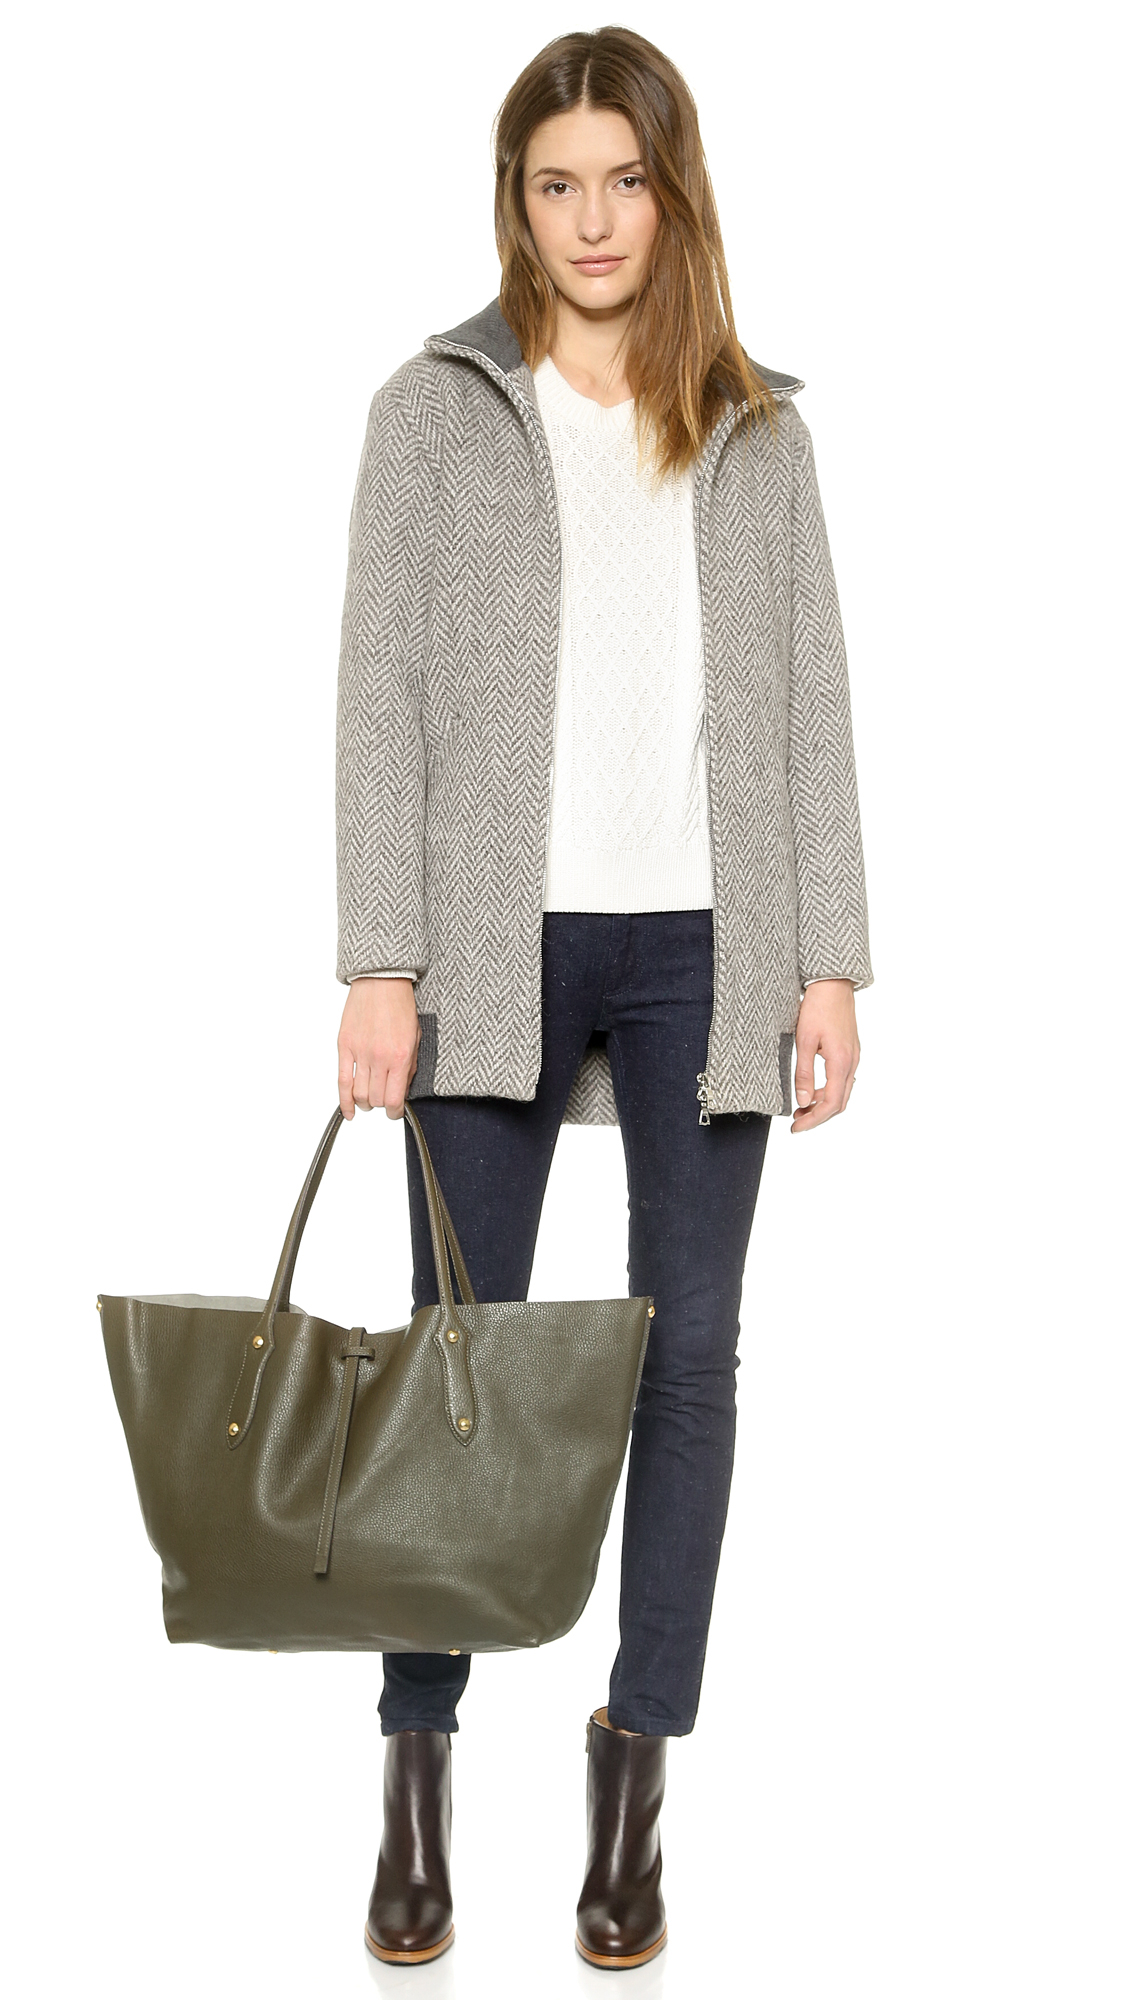 Lyst - Annabel Ingall Annabel Ingall - Military in Metallic 60e03c18104df